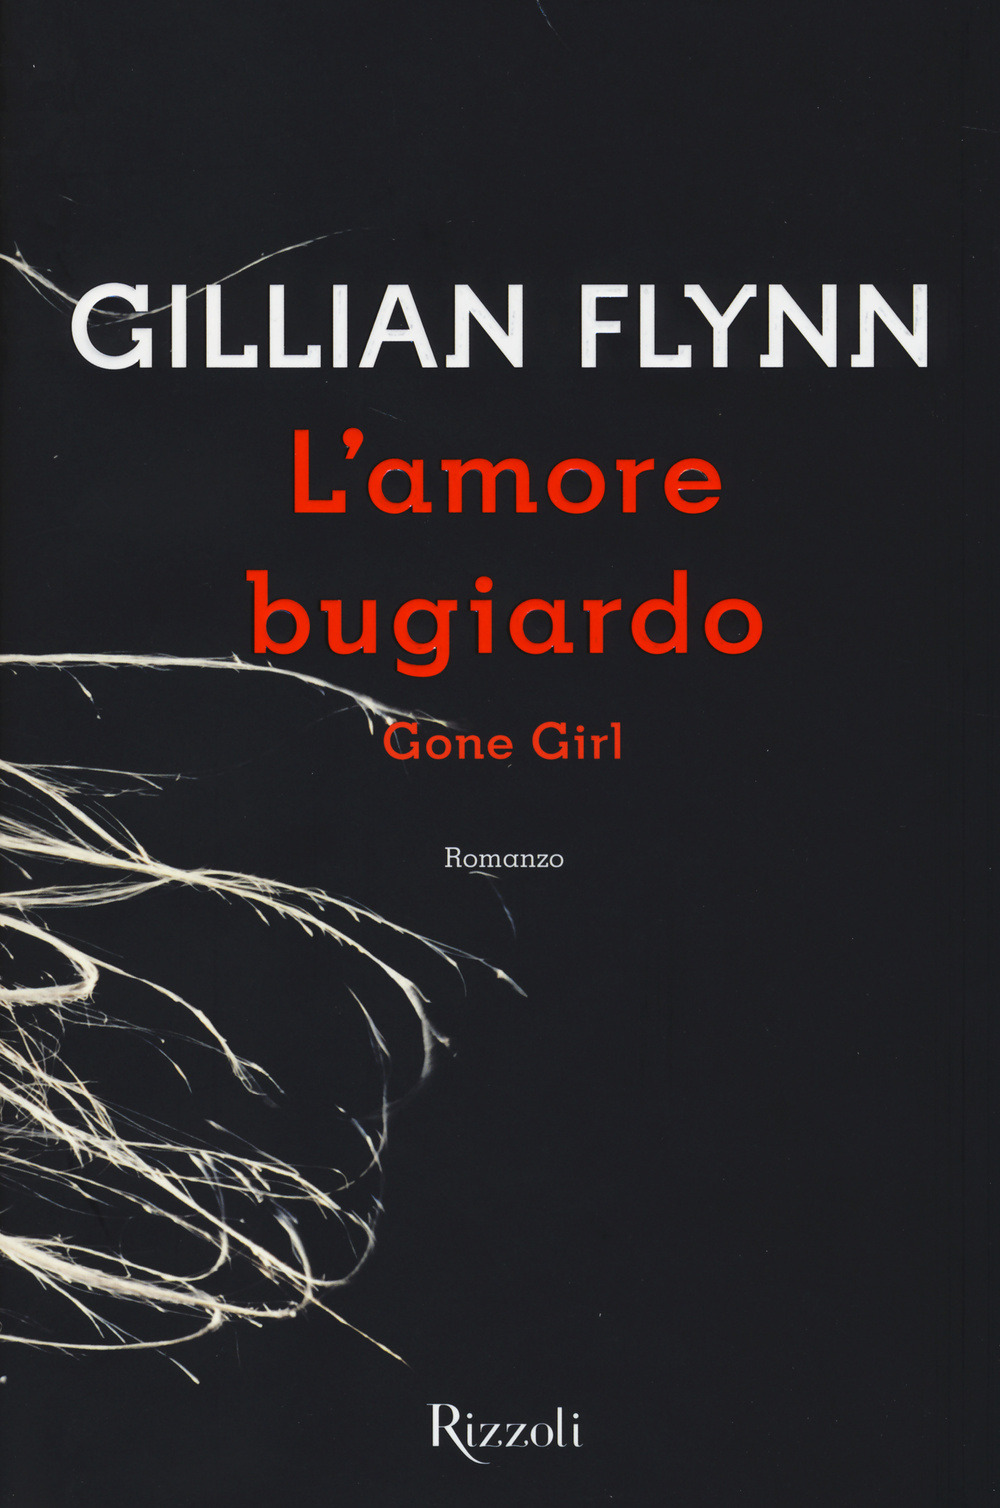 Image of L' amore bugiardo. Gone girl